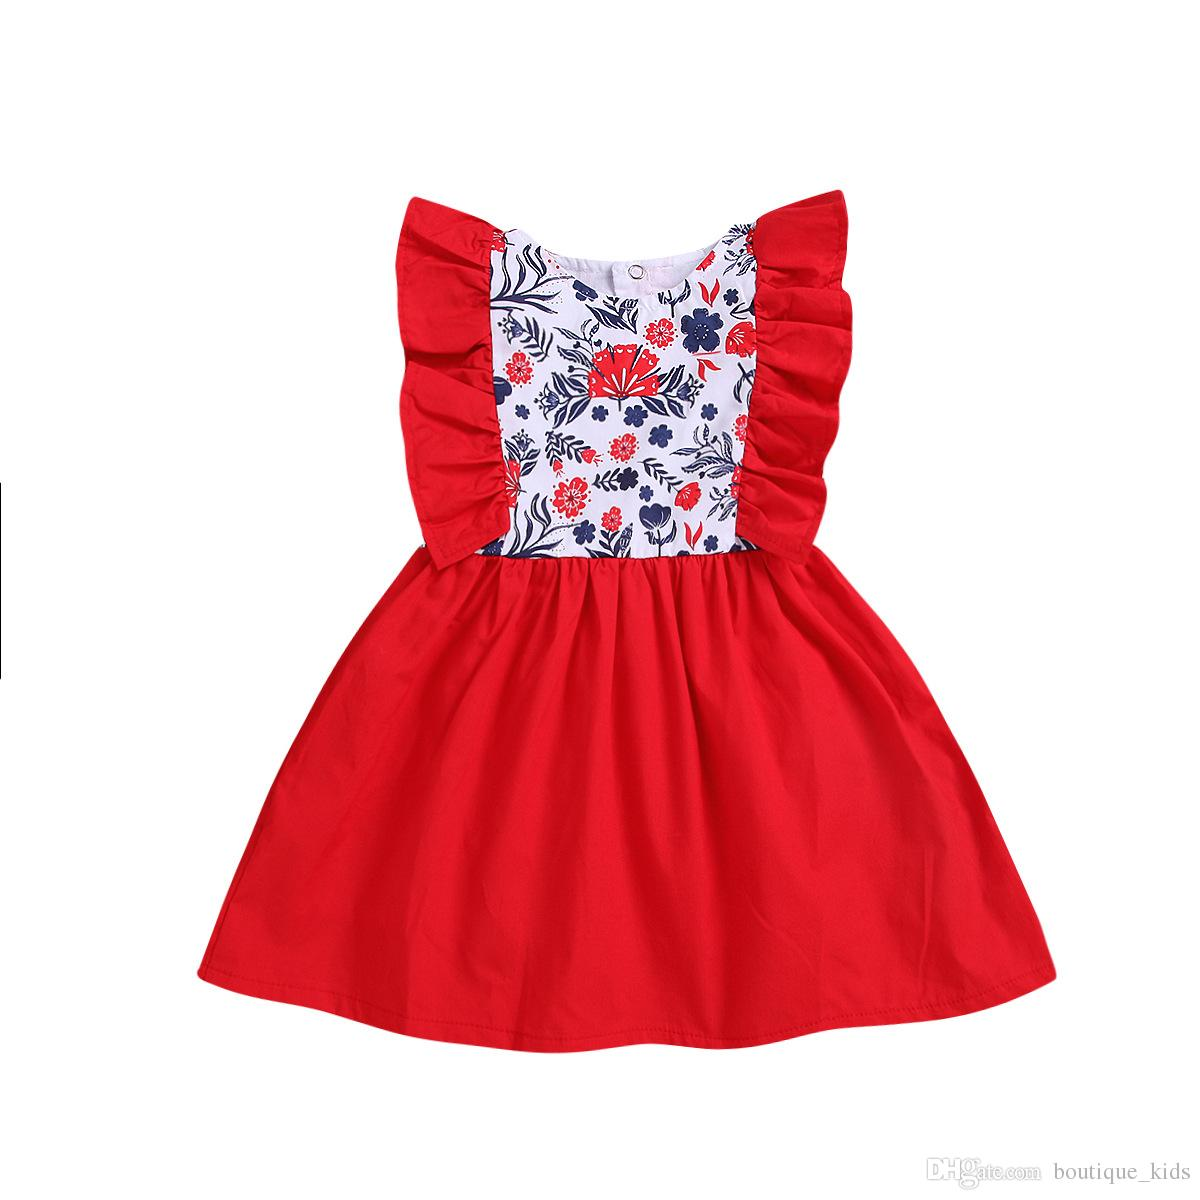 f3c78d3016b8 2019 Girls Christmas Dress 2019 New Kids Baby Girl Clothes Sleeveless Flower  Ruffle Bowknot Red Baby Girls Dresses Xmas New Year Infant Clothing From ...